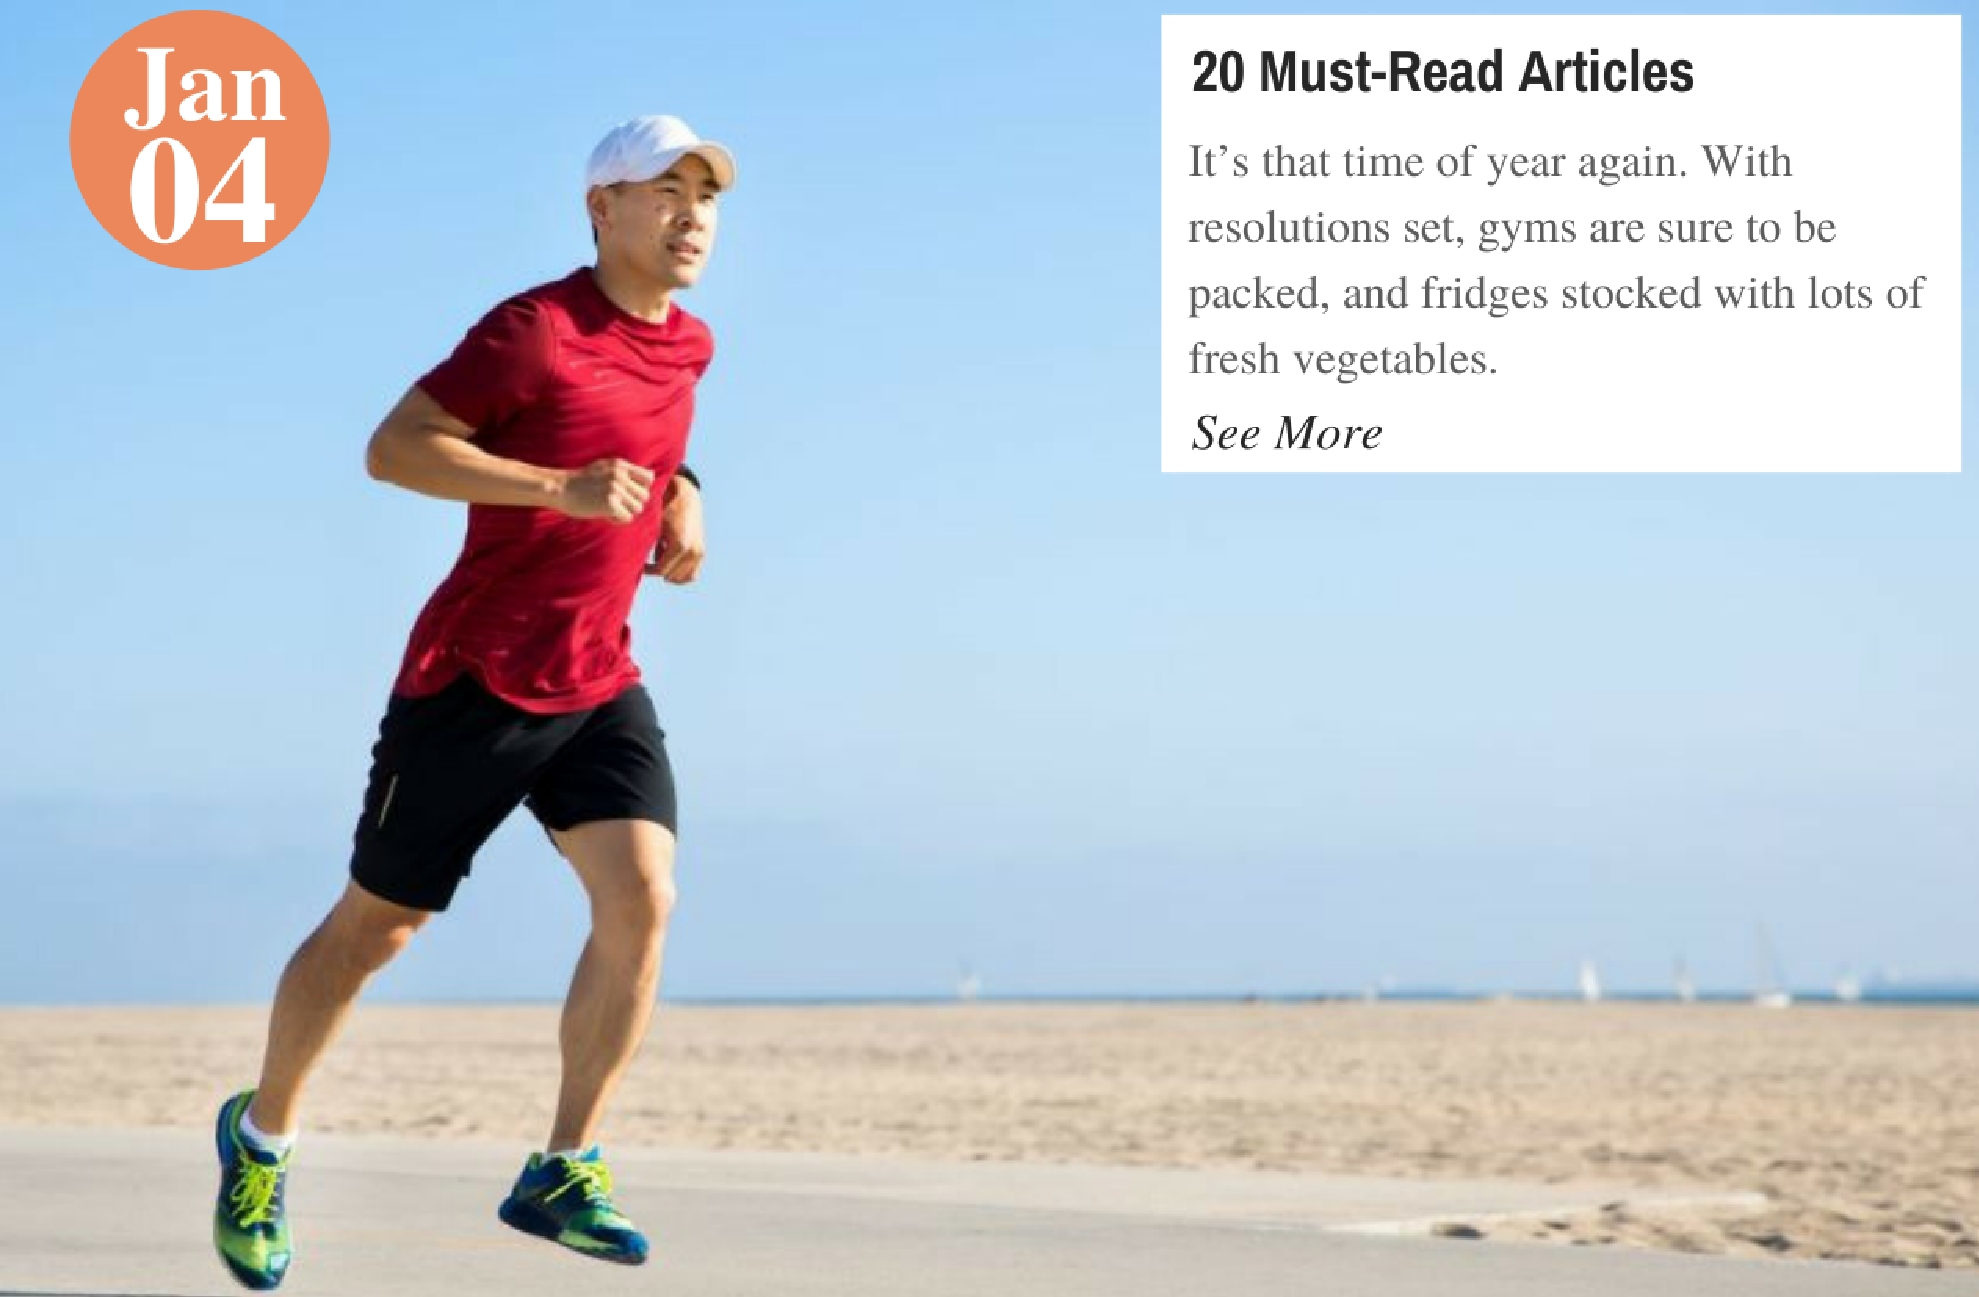 20 Must-Read Articles